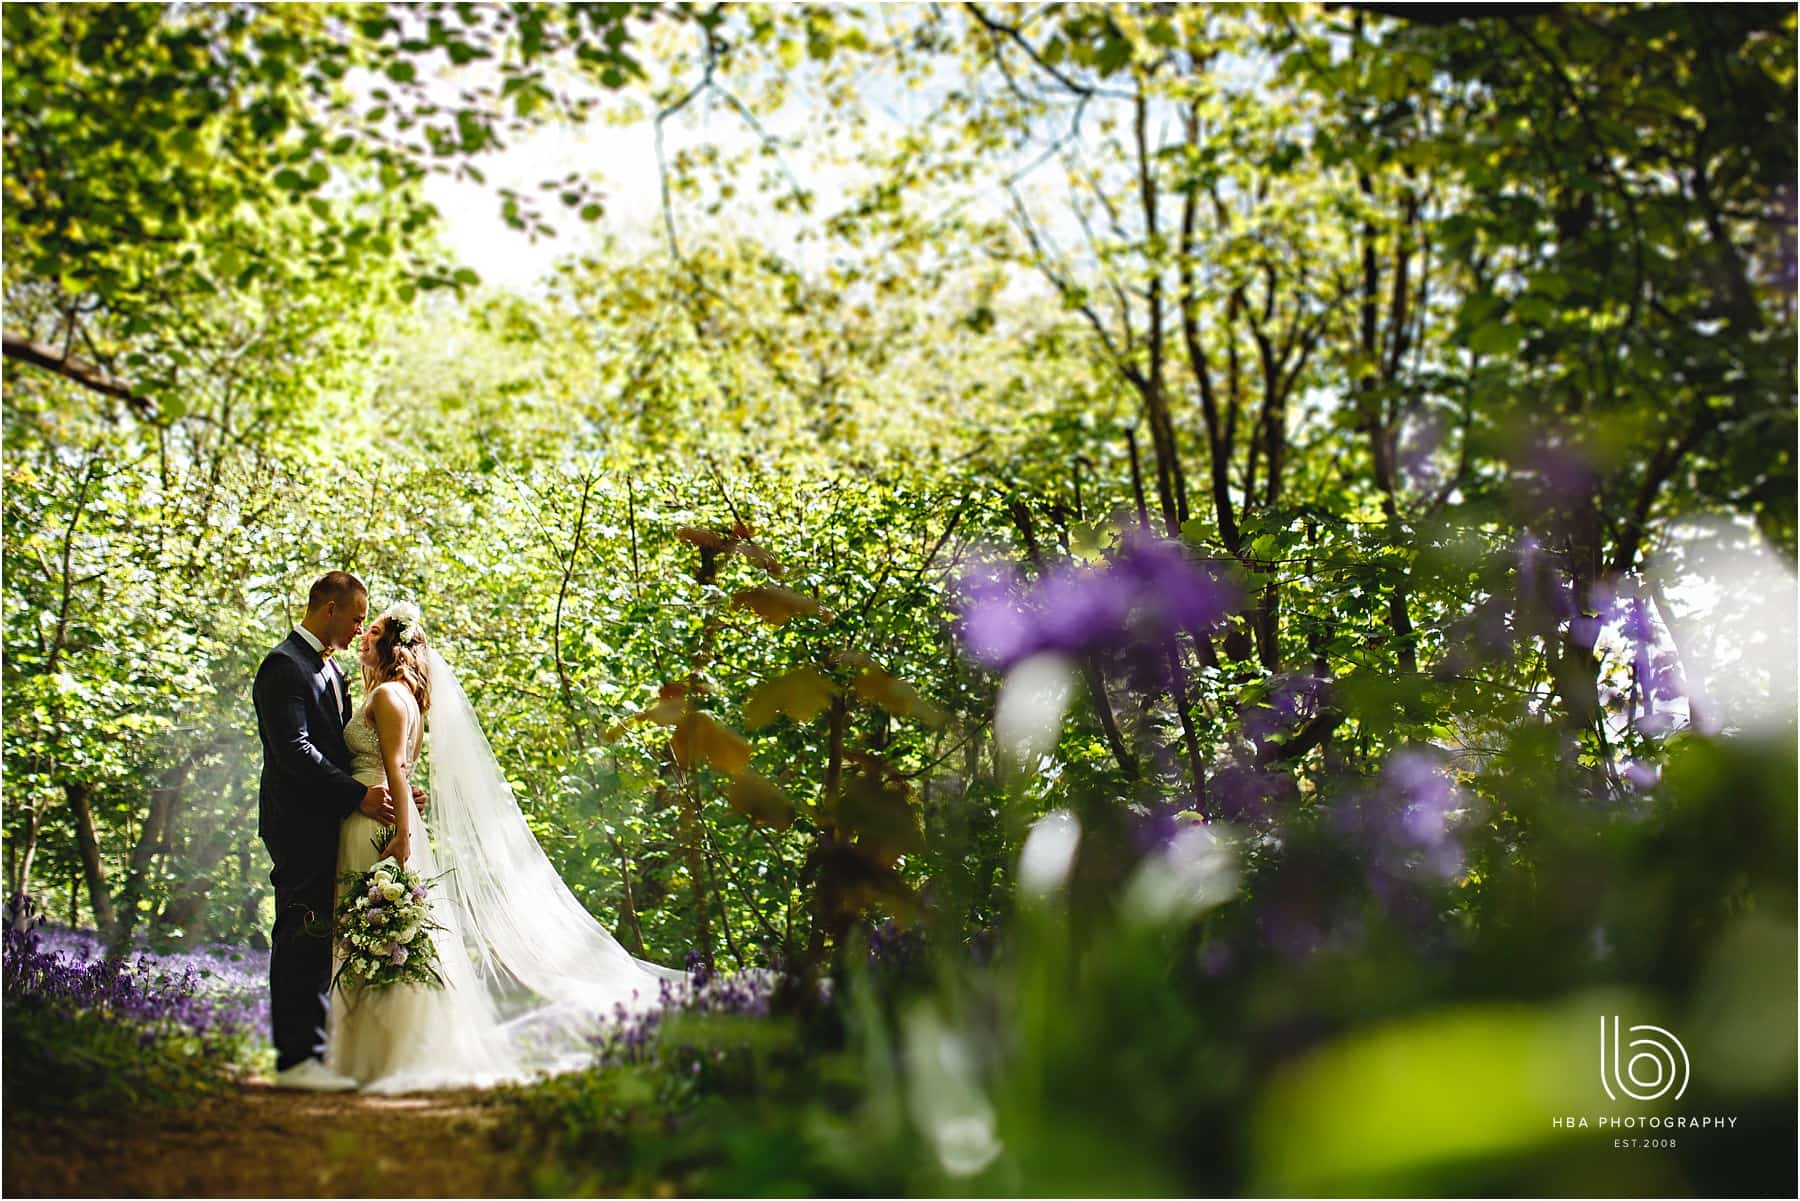 the bride and groom together in the woods